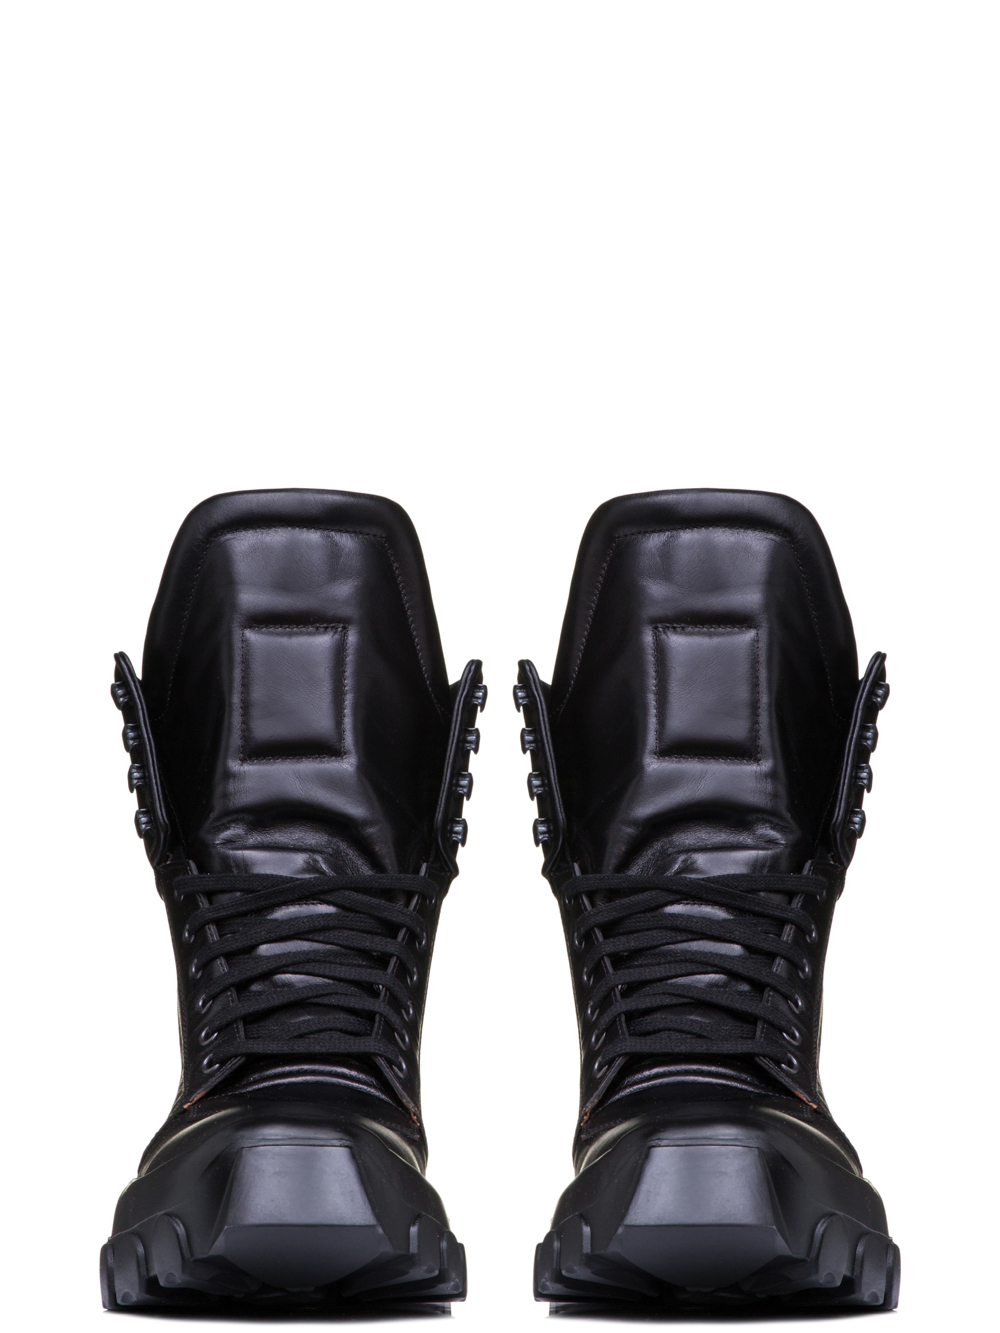 RICK OWENS OFF-THE-RUNWAY TRACTOR DUNK BOOTS IN BLACK HORSE LEATHER